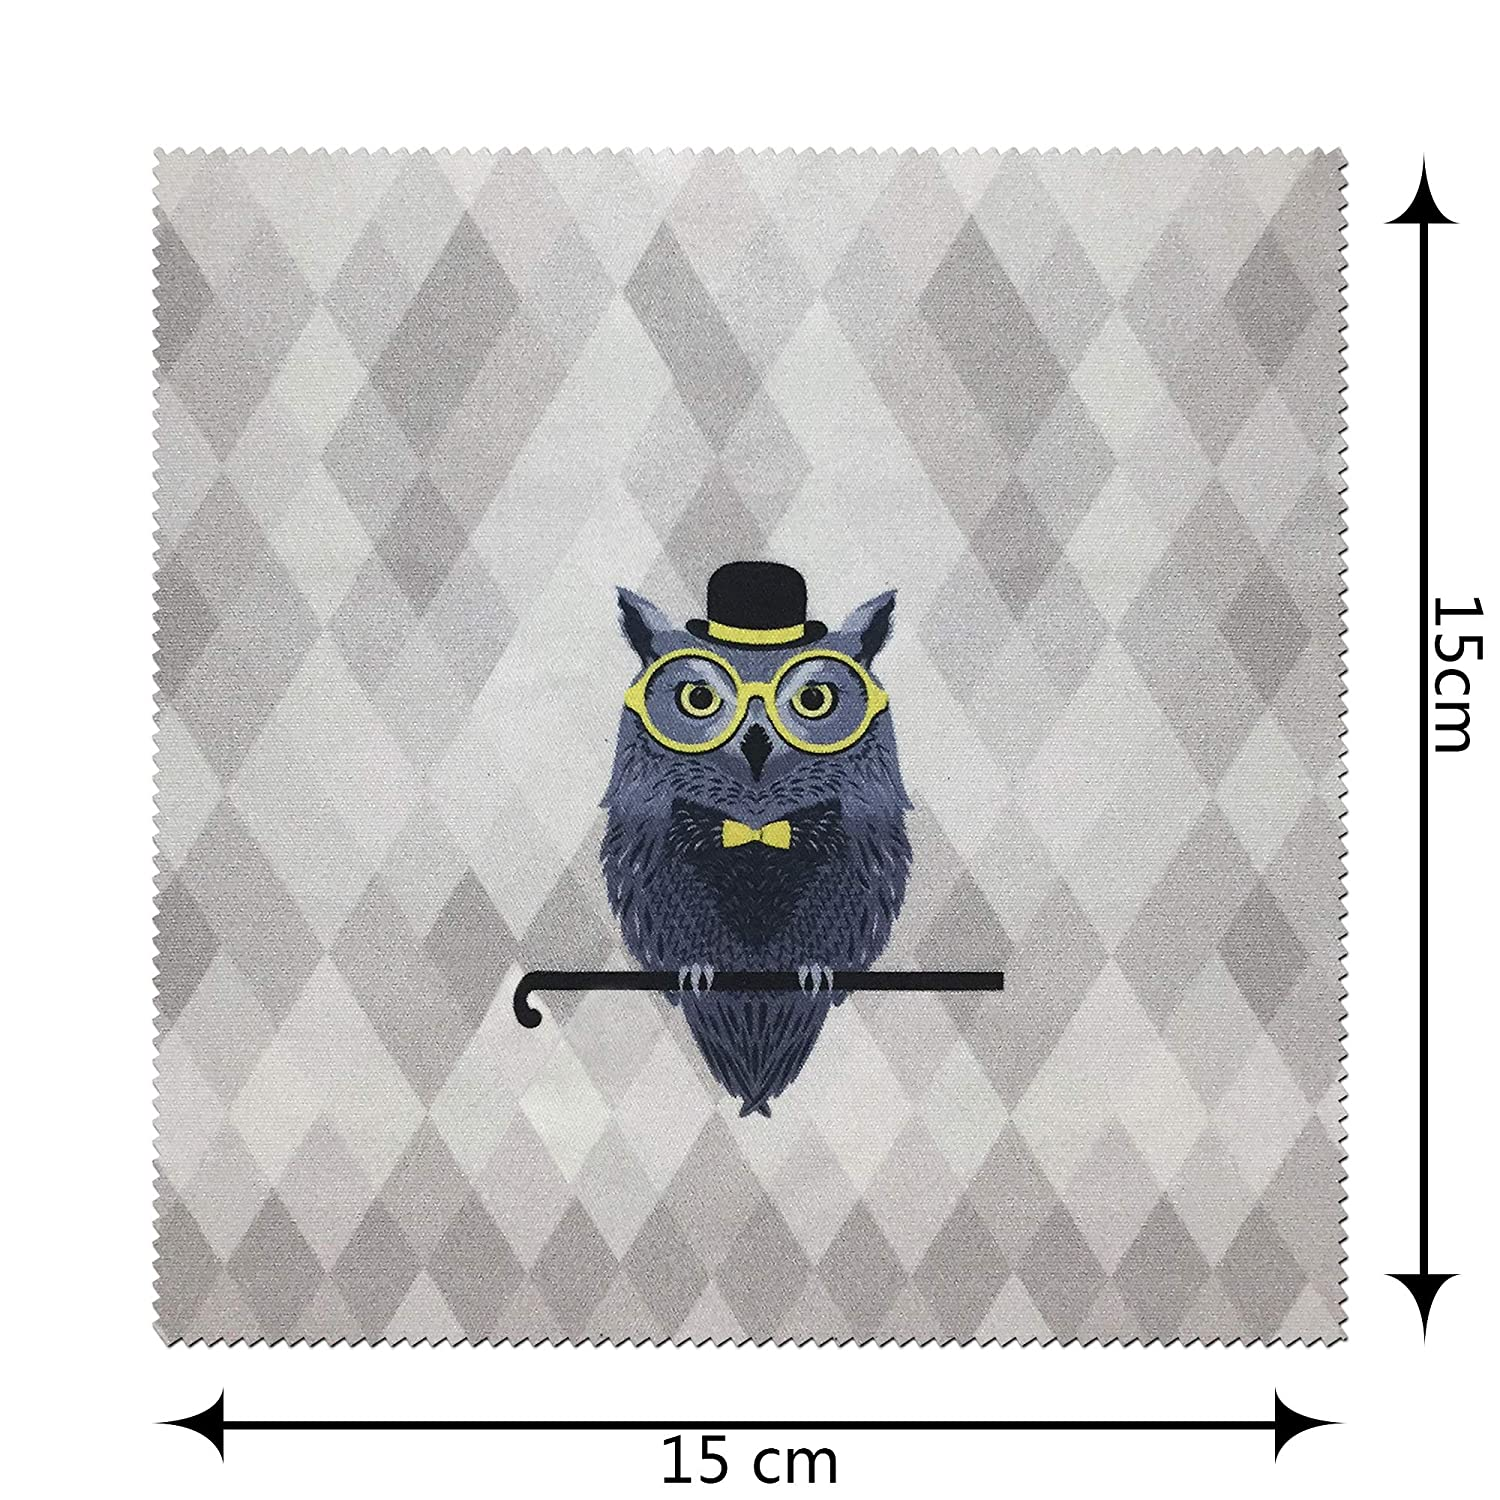 Cute Includes Glasses Pouch Yulan Hard Shell Eyeglasses Case Owl Elk Fabric Print Large Sunglasses Case